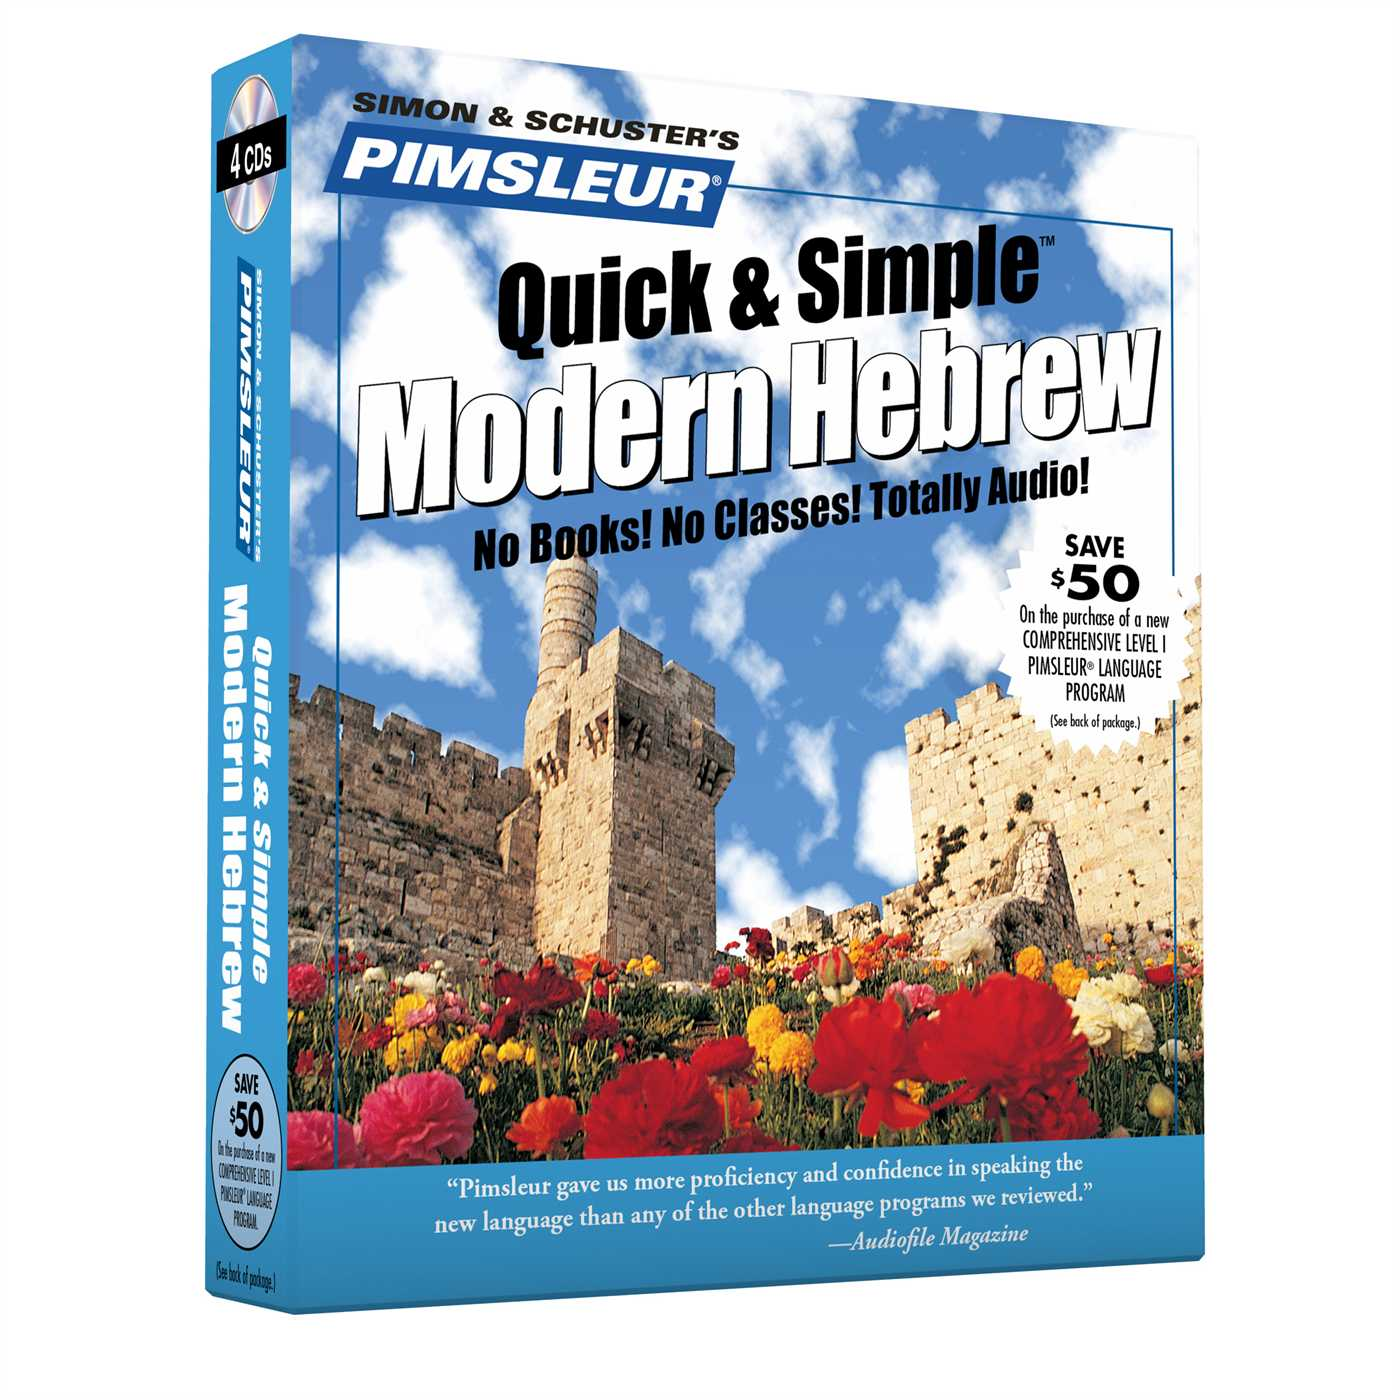 Pimsleur Hebrew Quick & Simple Course - Level 1 Lessons 1-8 CD : Learn to Speak and Understand Hebrew with Pimsleur Language Programs